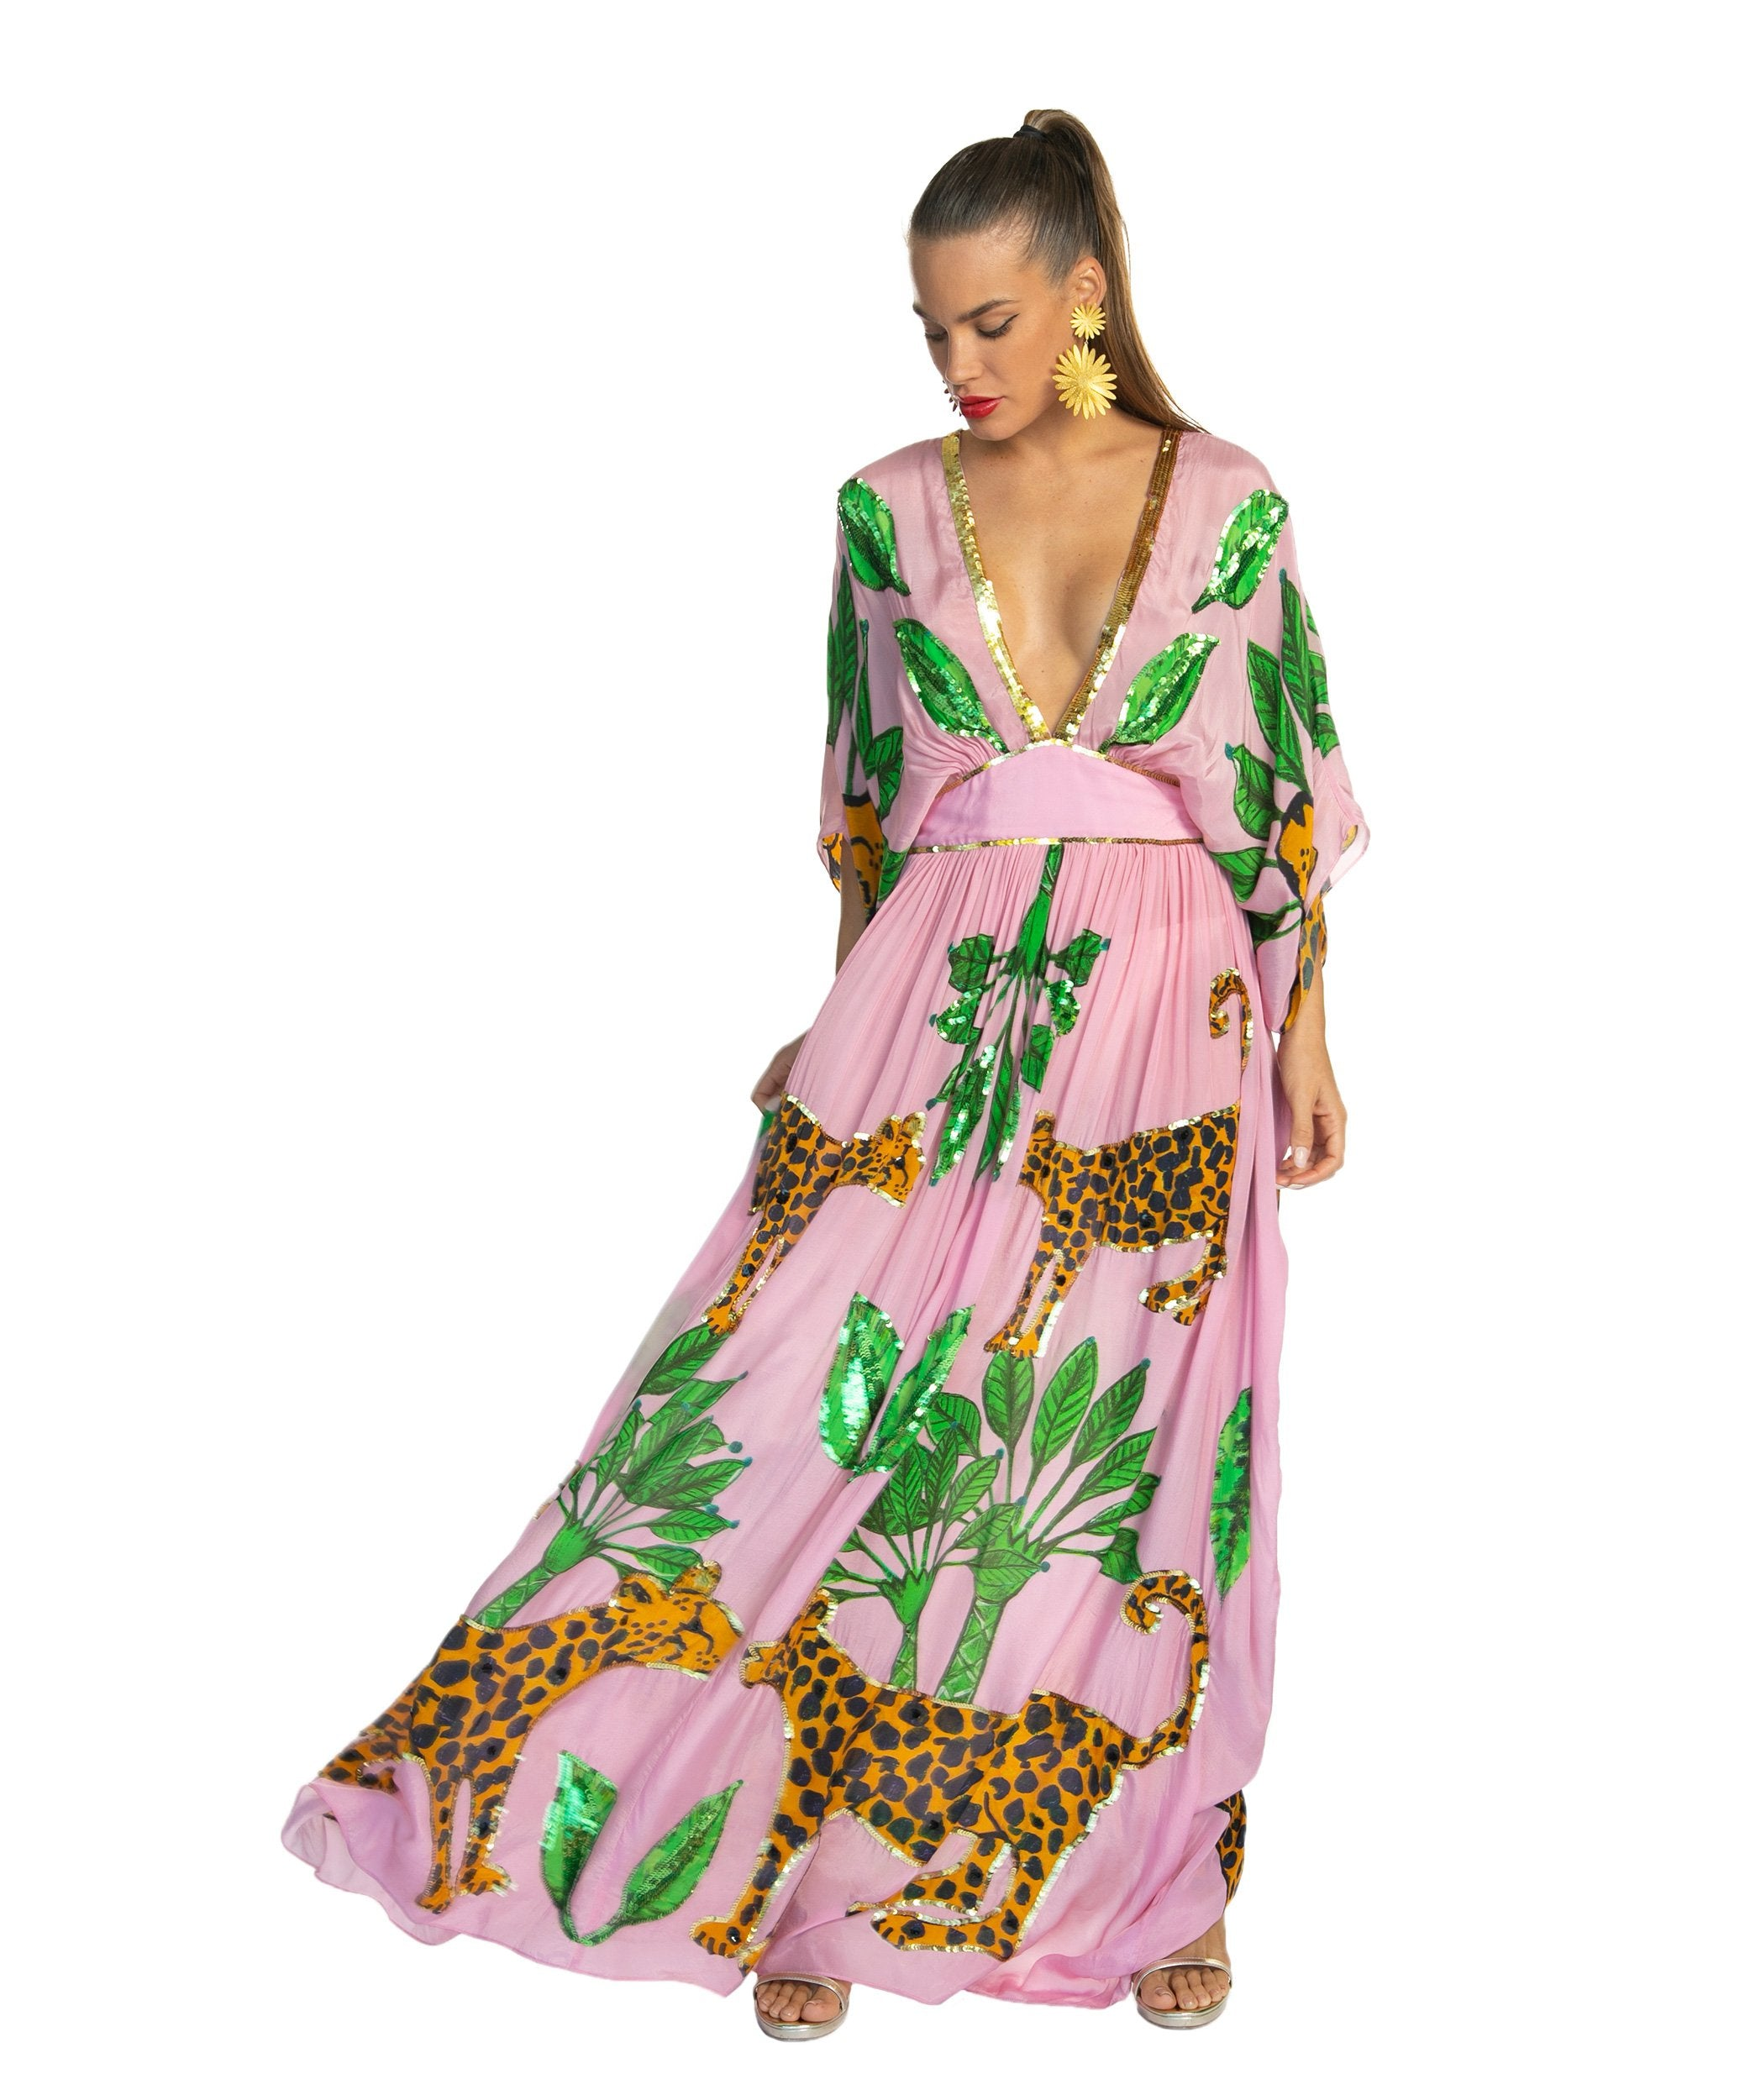 The Pink Guepardo Silk Dress by Bonita Collective